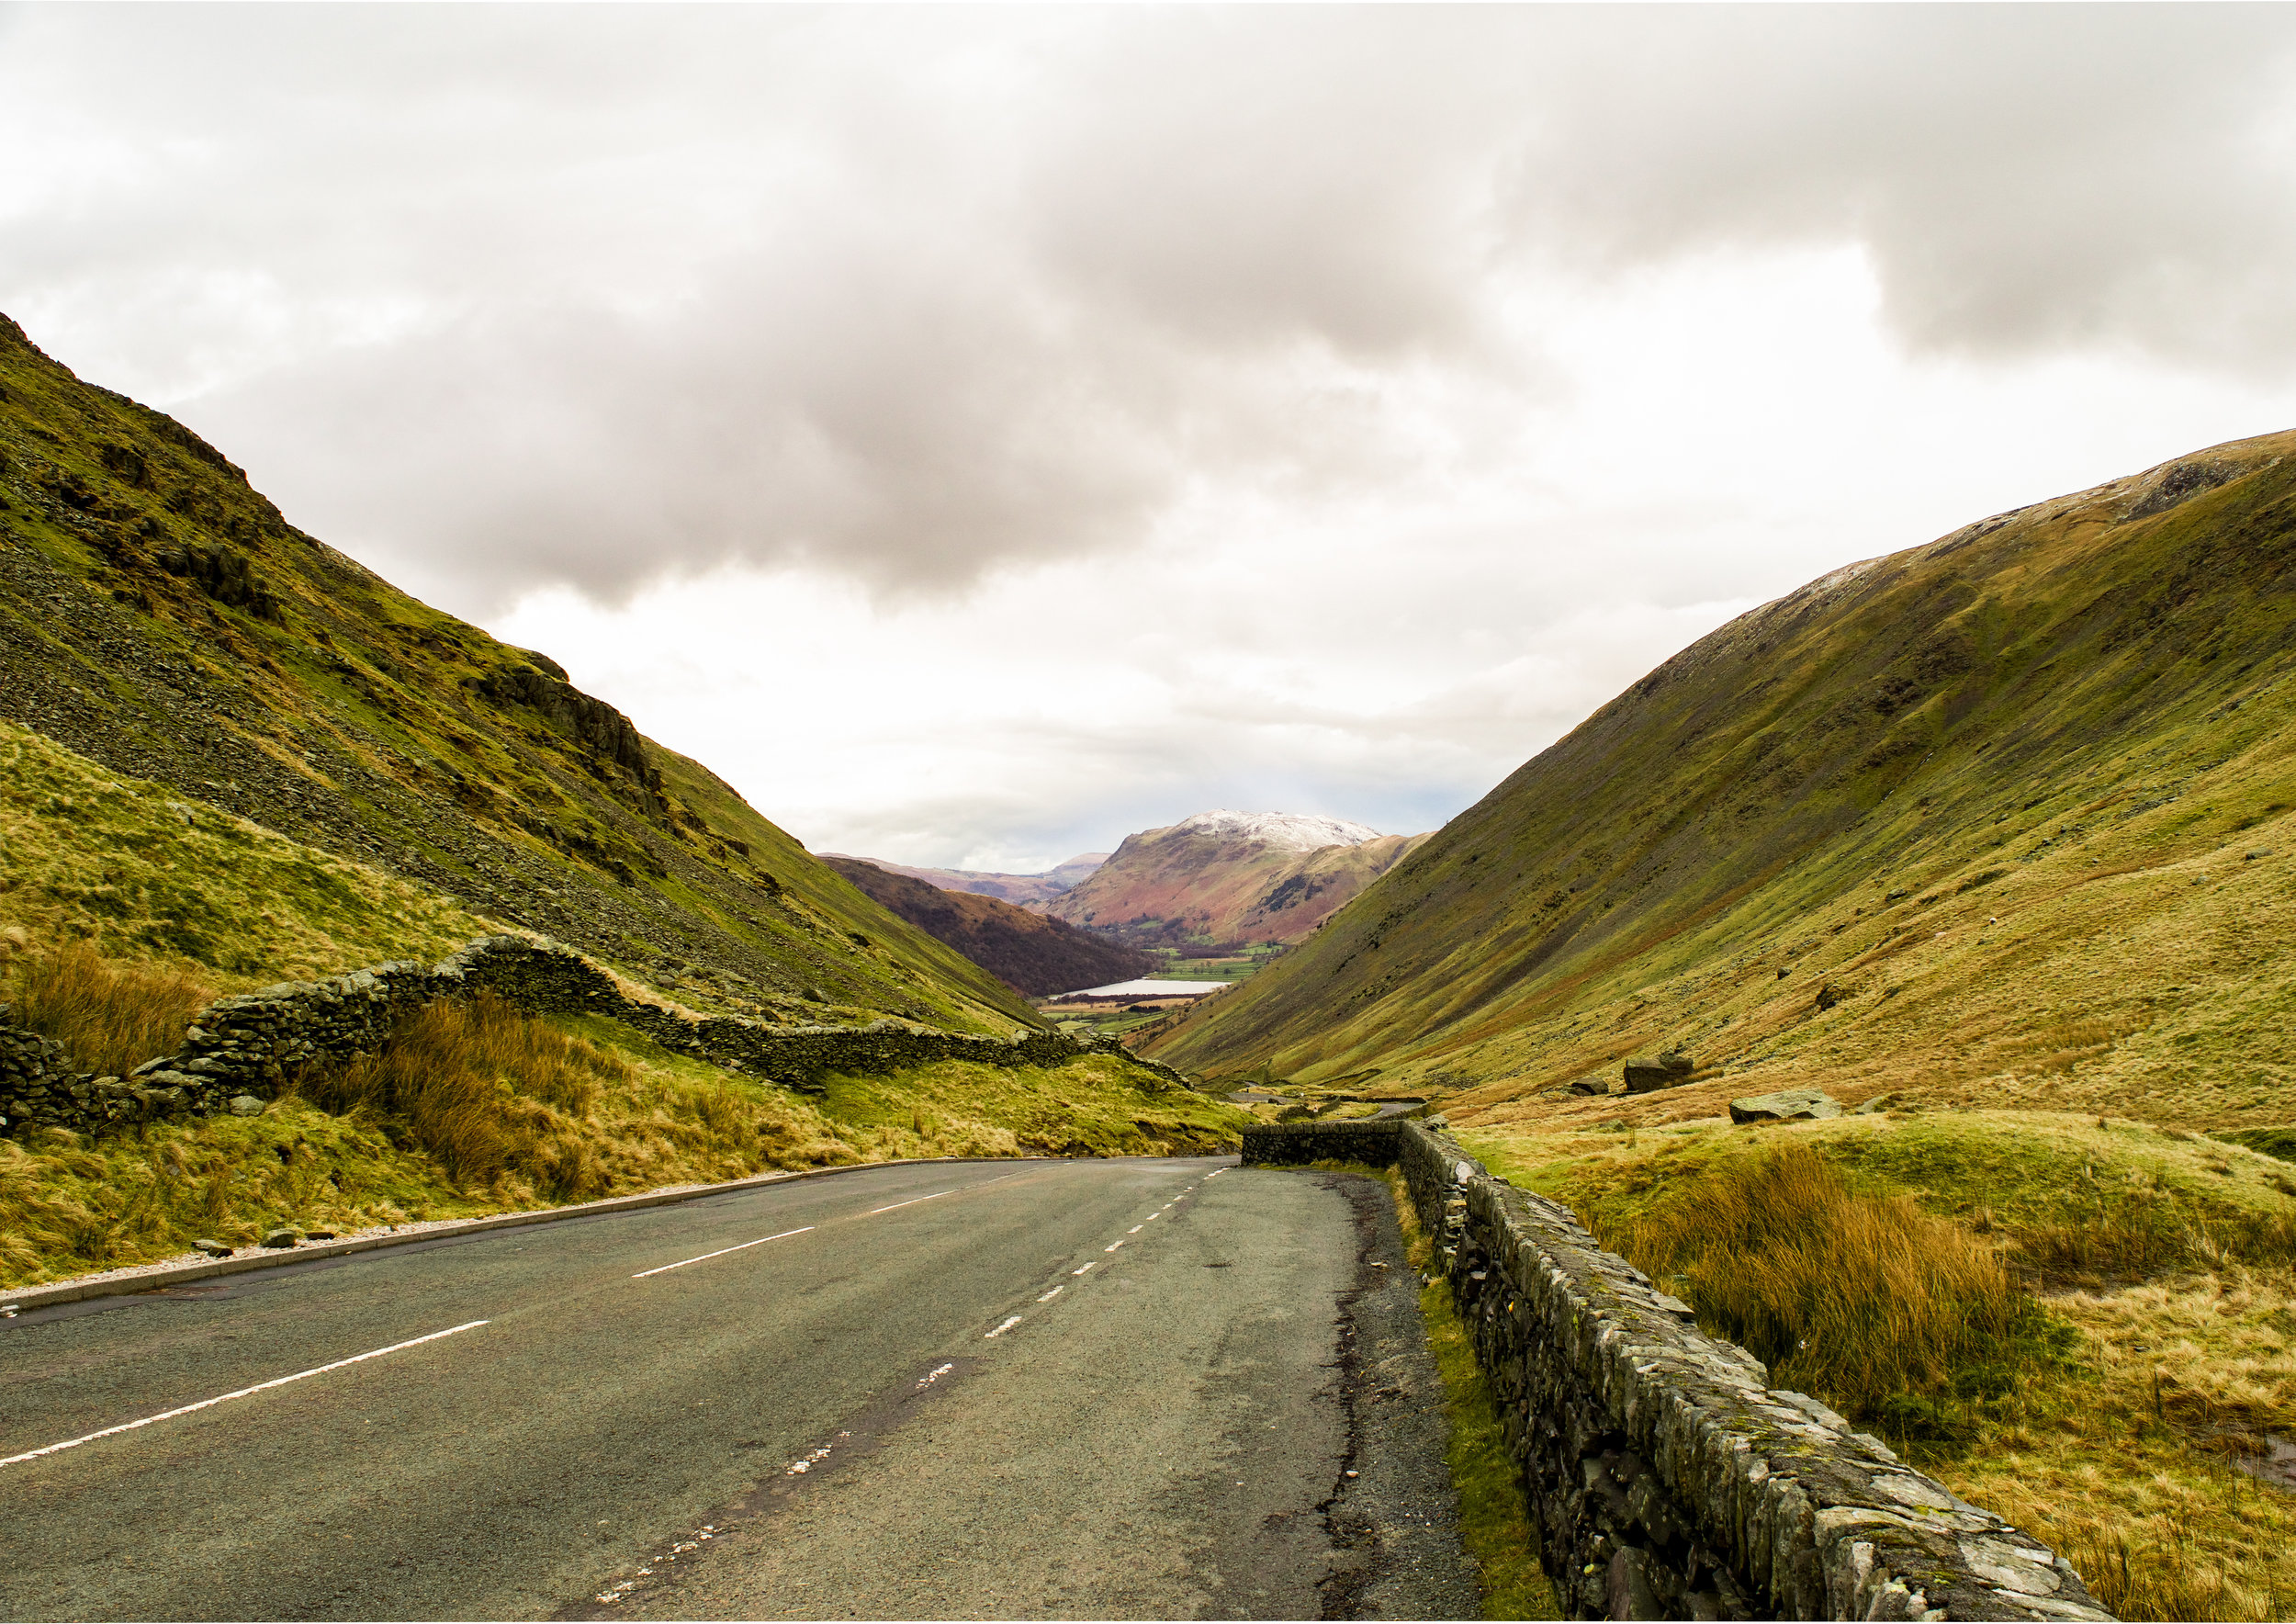 VIEW FROM THE TOP OF KIRKSTONE PASS